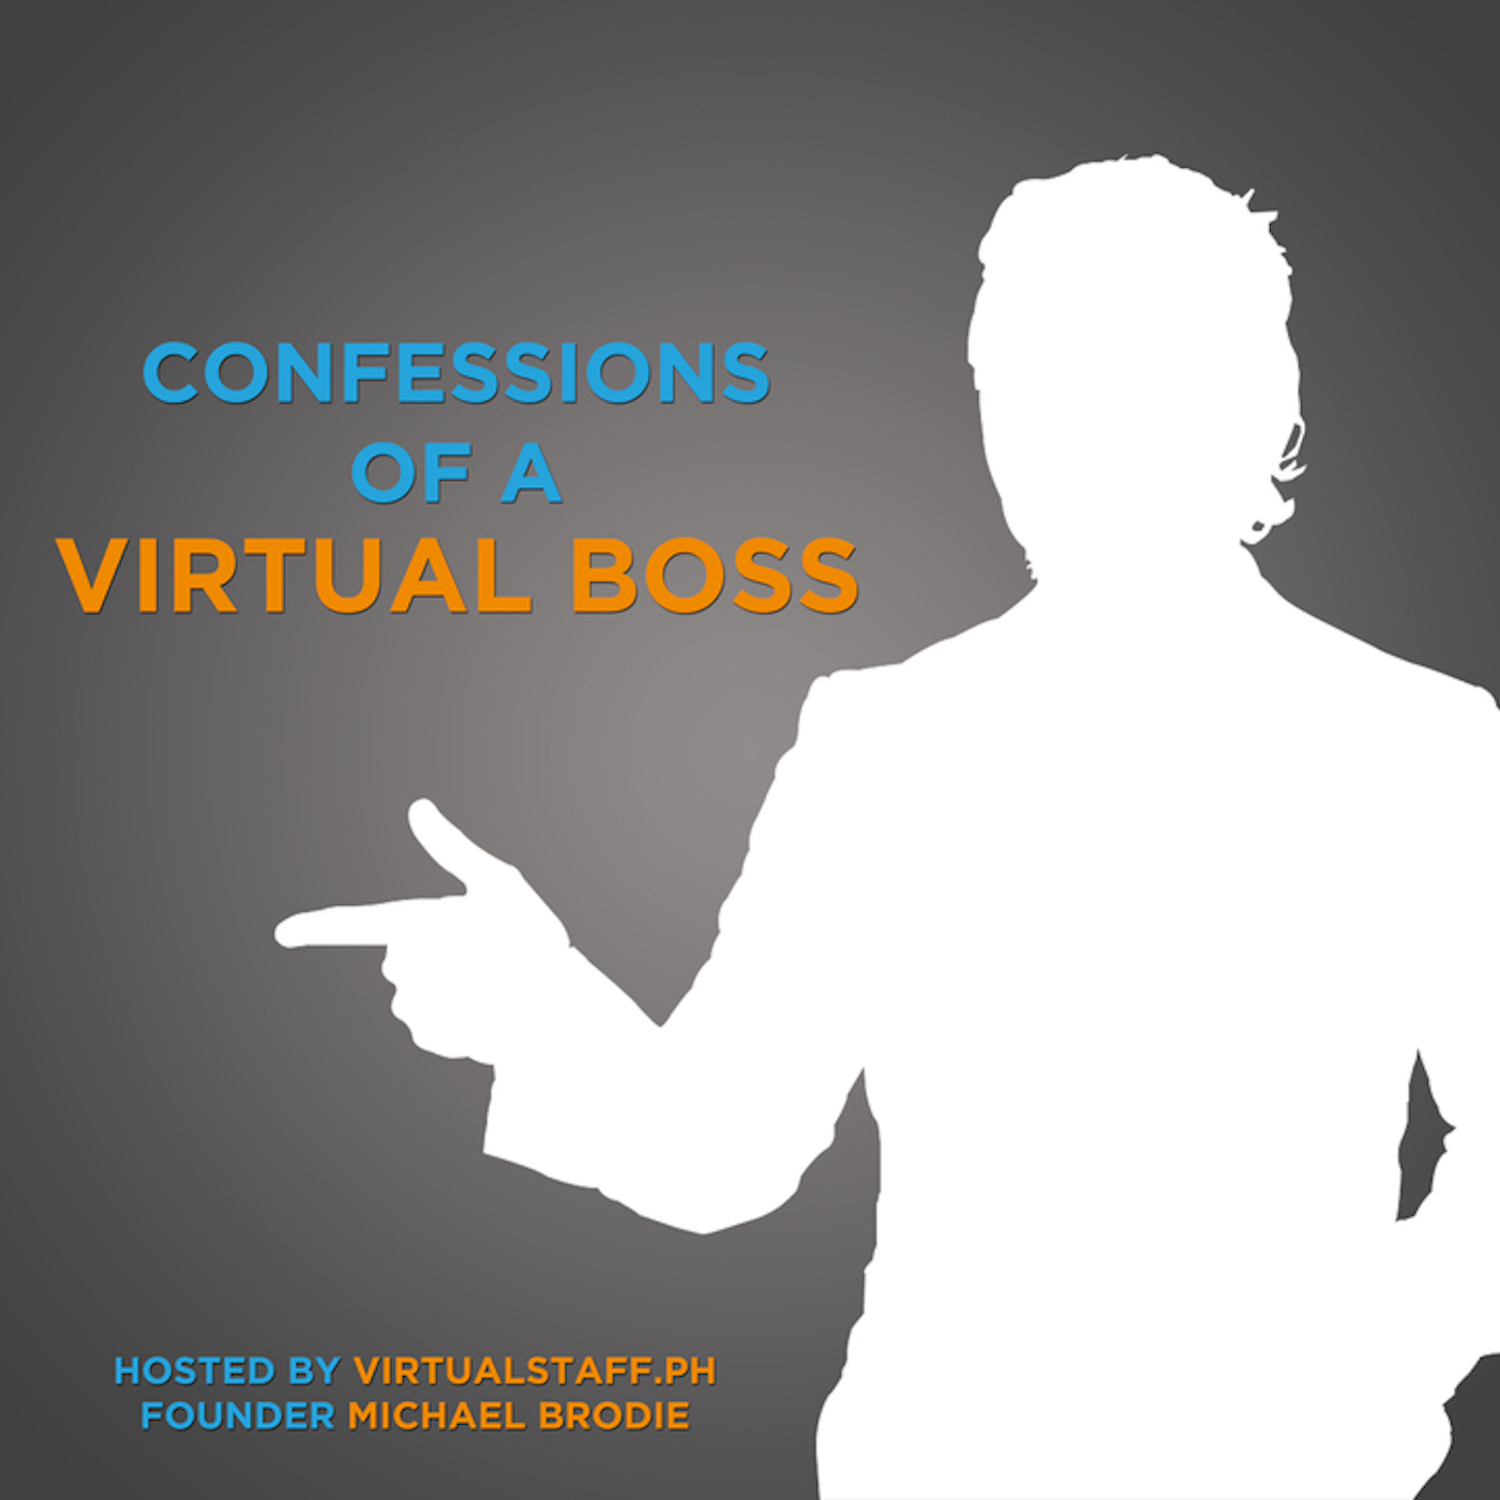 Confessions of a Virtual Boss